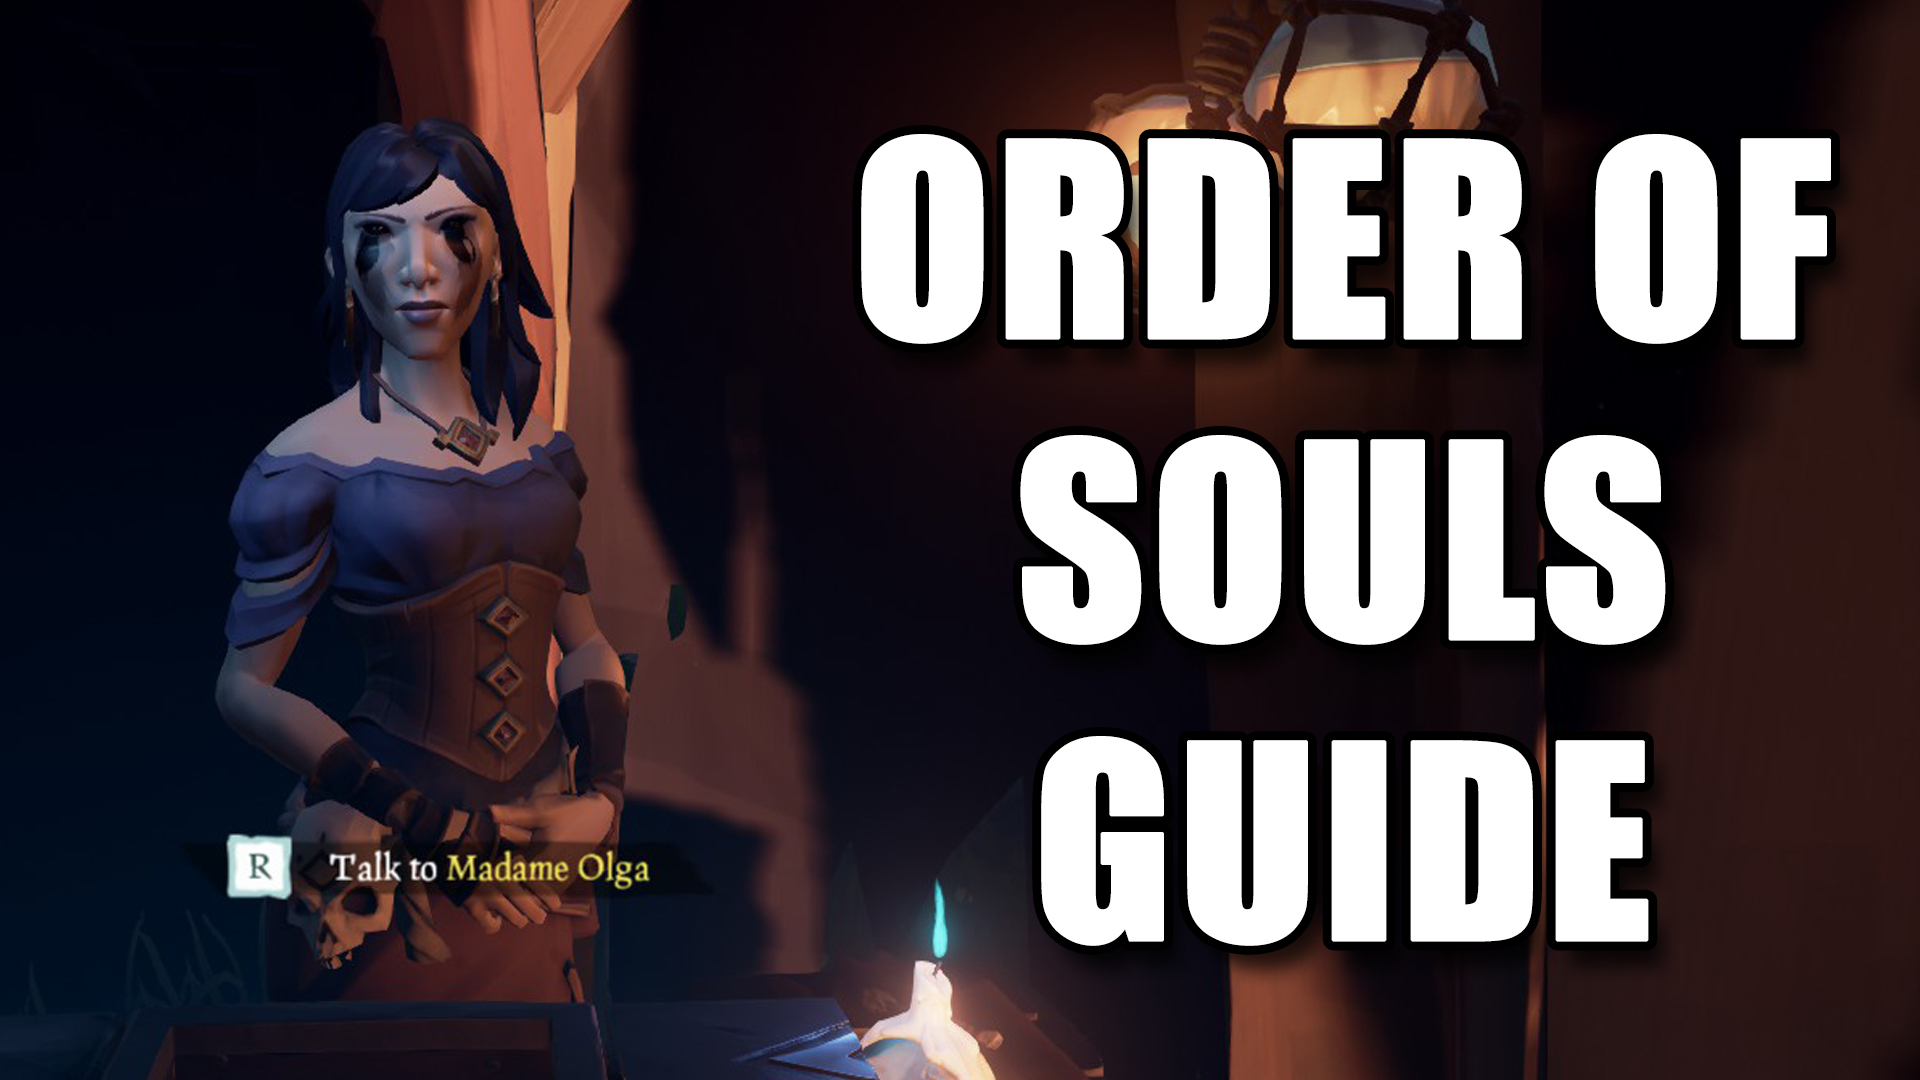 Sea of Thieves Order of Souls Quests